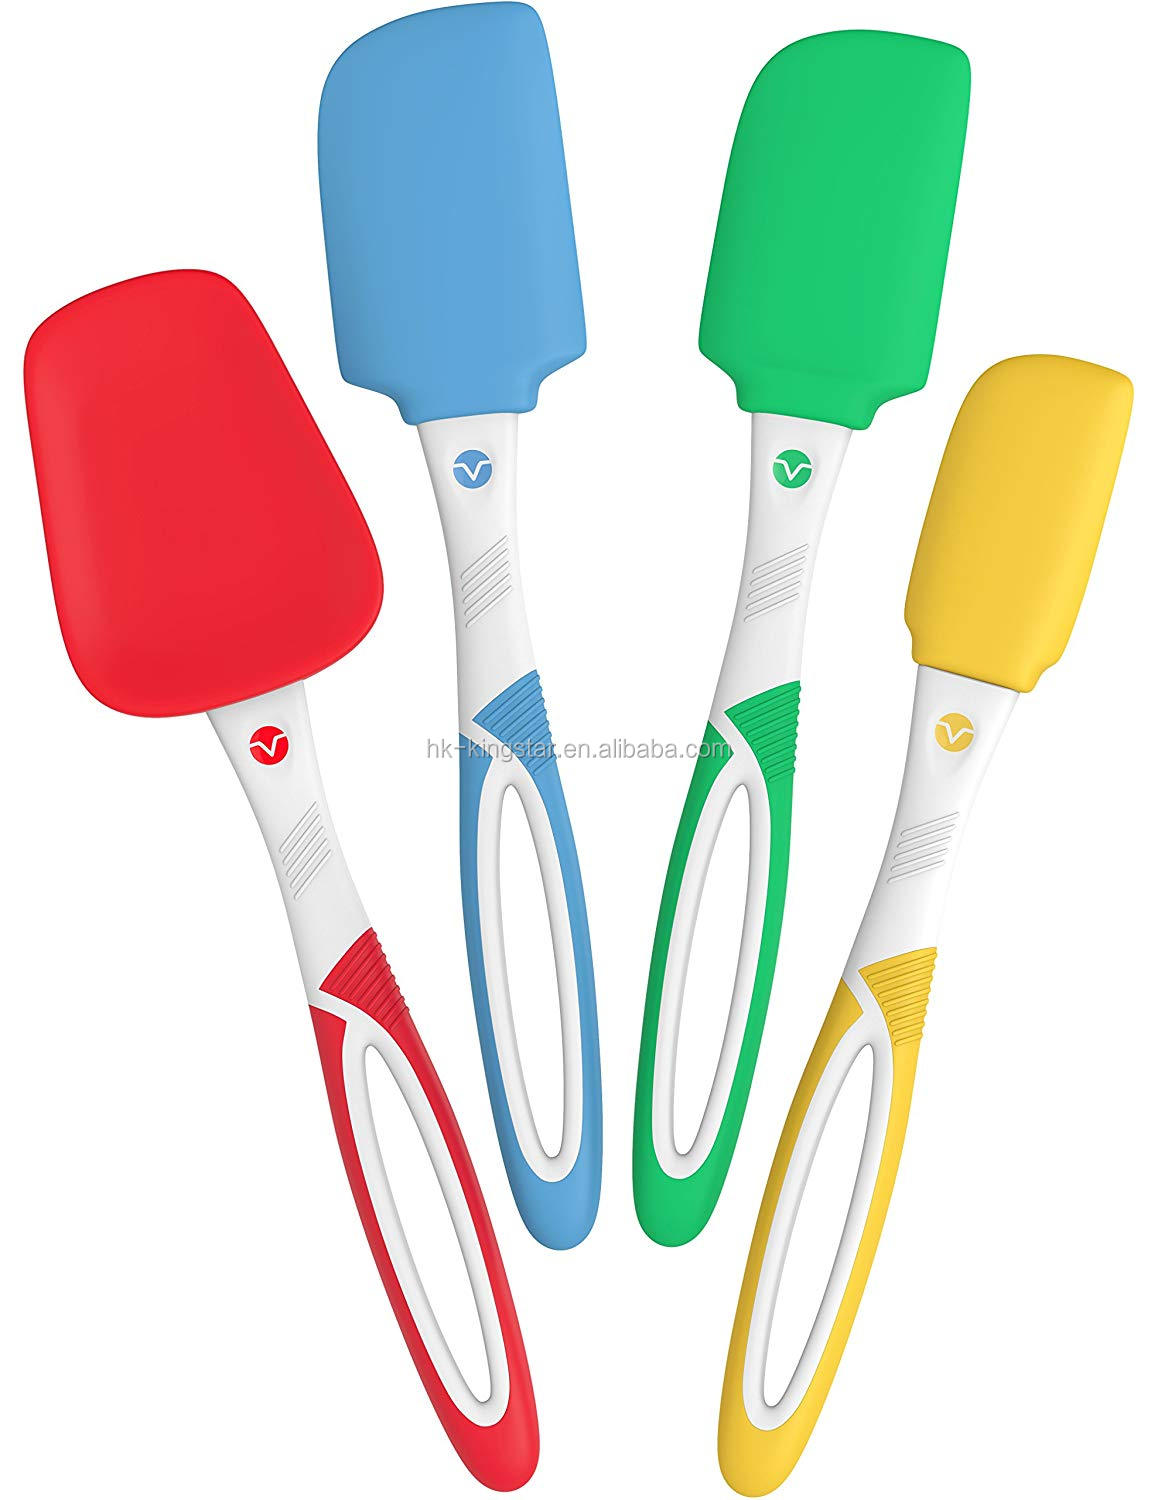 4 pcs set Silicone Spatulas Heat Resistant Silicone Kitchen Utensils